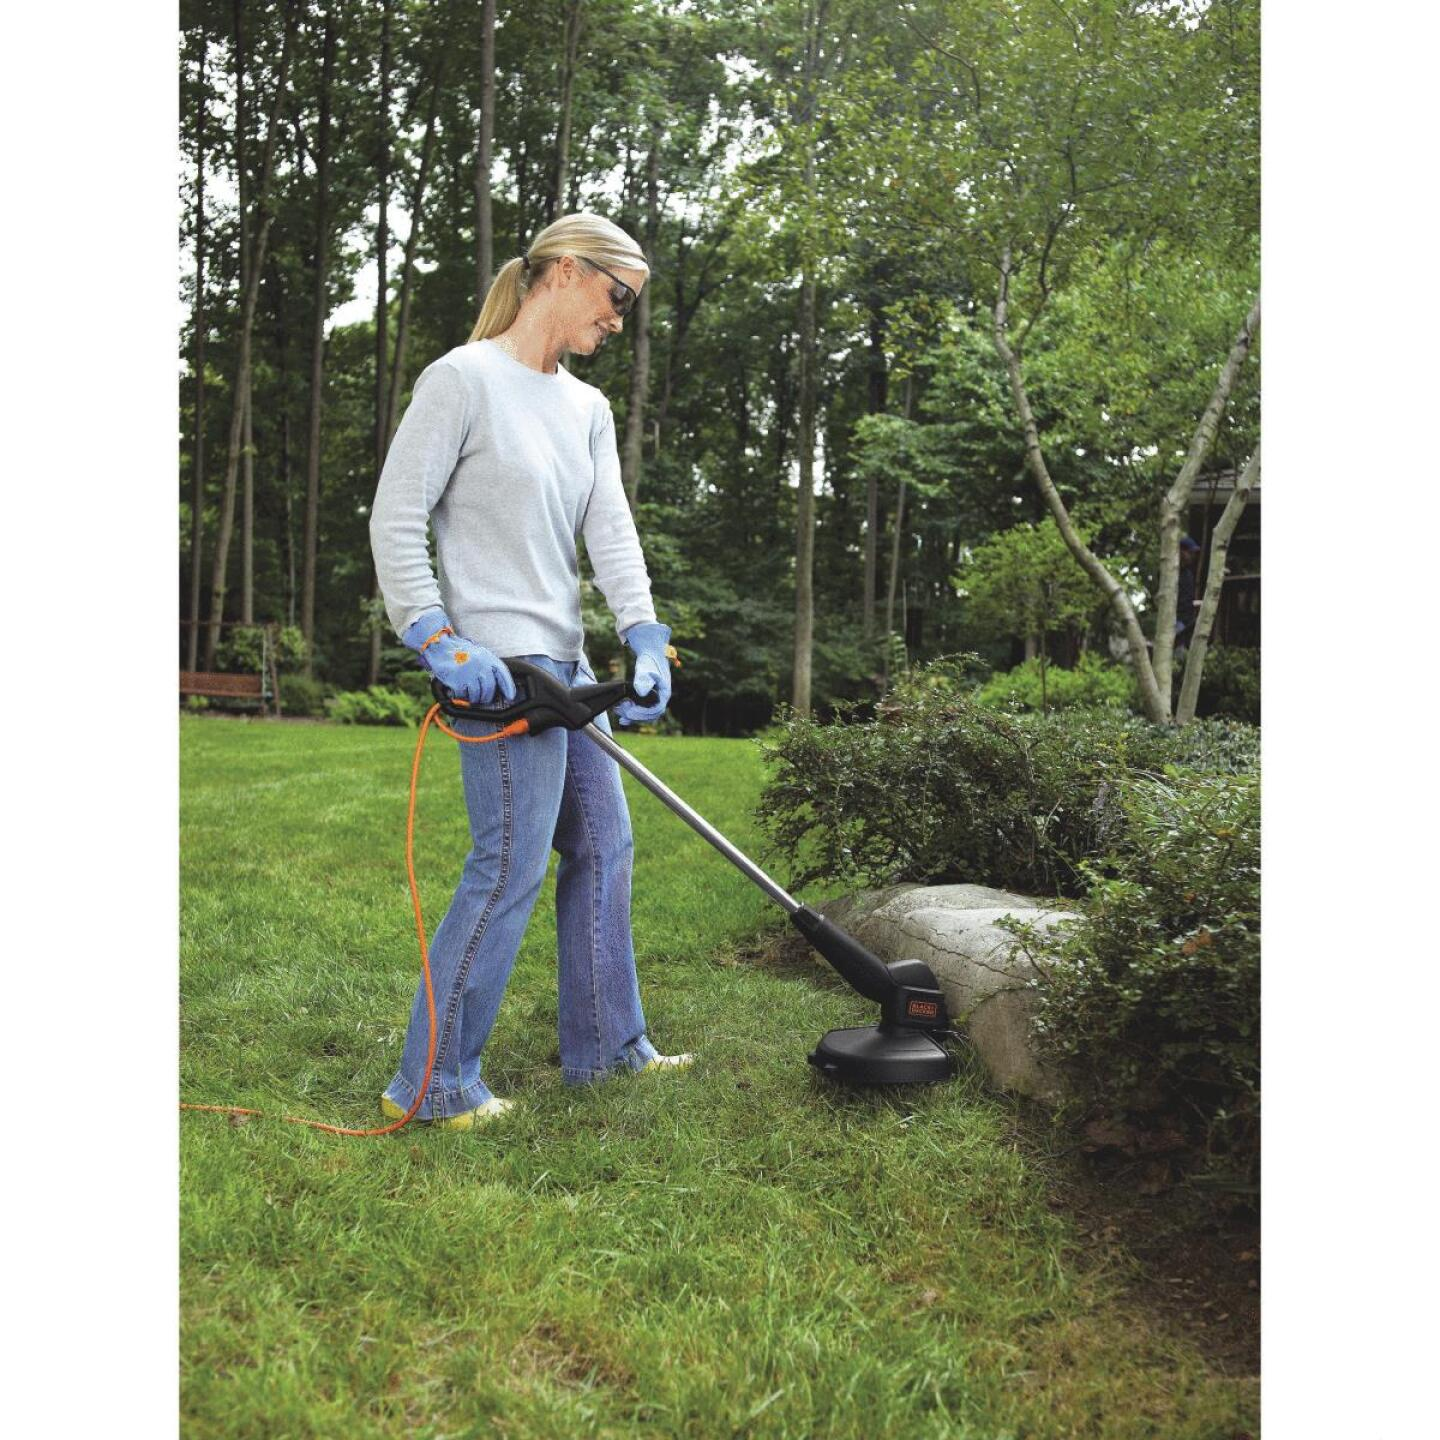 Black & Decker 12 In. 3.5-Amp Corded Electric String Trimmer Edger Image 2